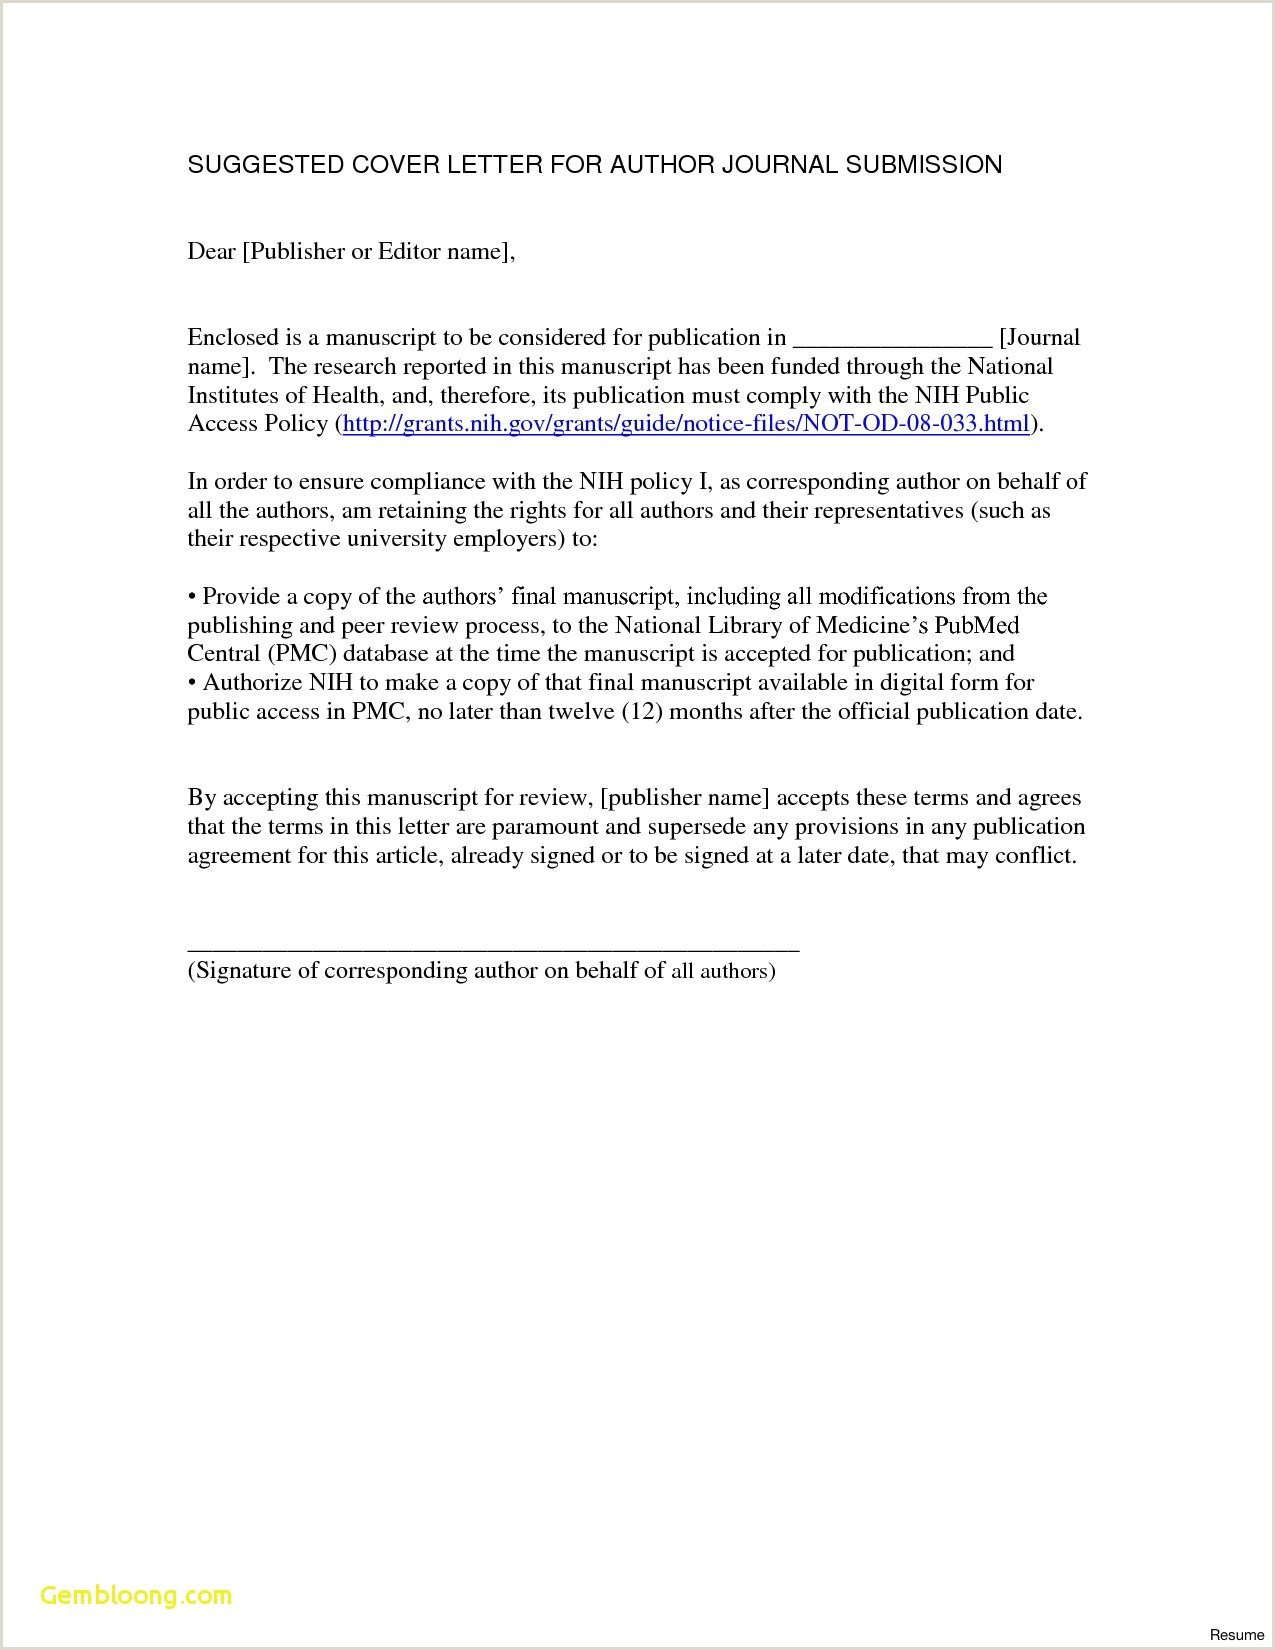 public health cover letter Serptorpentersdaughter